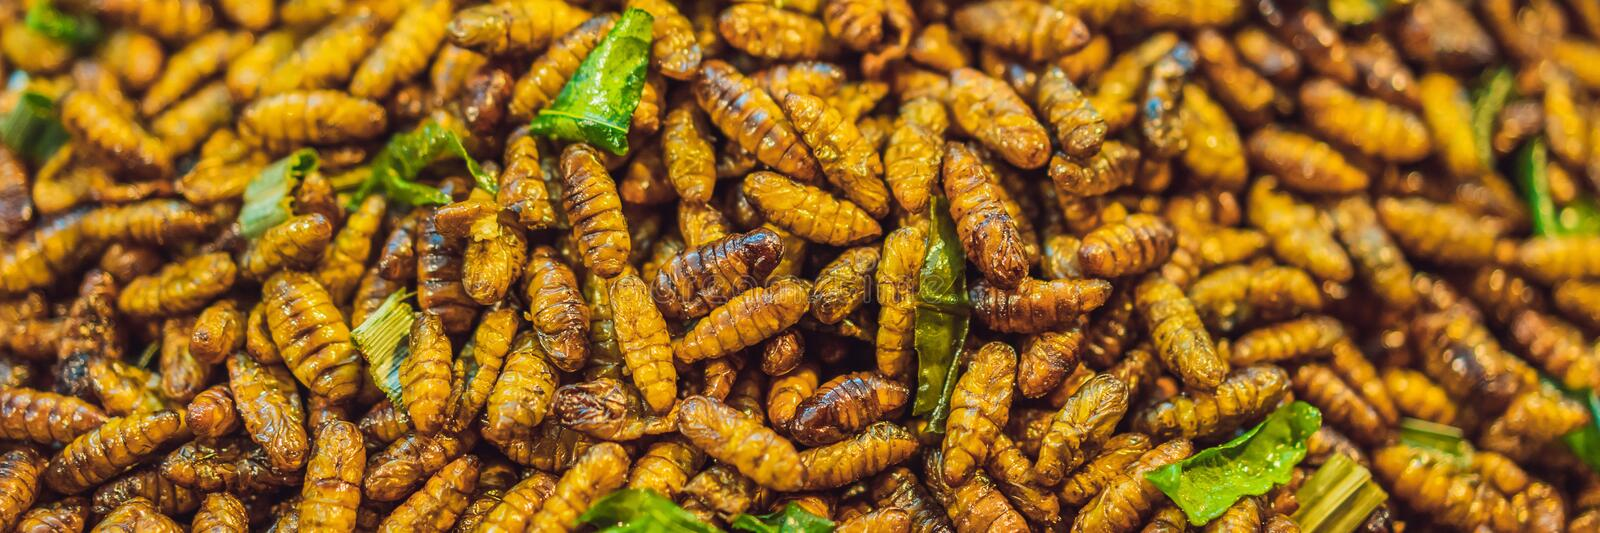 Fried insects, Bugs fried on Street food in thailand BANNER, LONG FORMAT. Fried insects, Bugs fried on Street food in thailand. BANNER, LONG FORMAT stock images